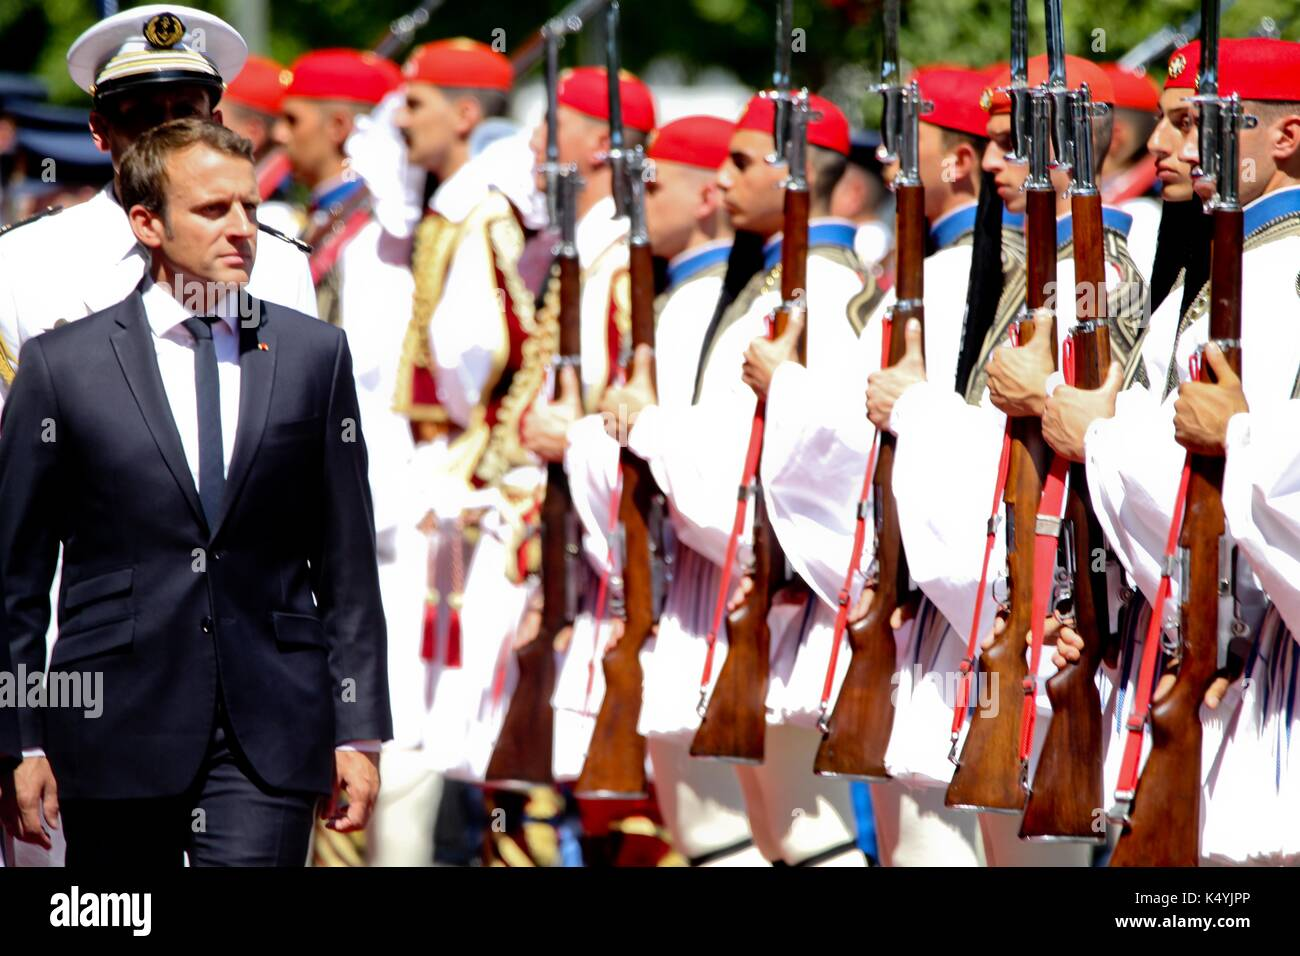 Athens, Greece. 7th Sep, 2017. Greek President Prokopis Pavlopoulos, left, and his French counterpart Emmanuel Macron, review the Presidential Guard in Athens. Macron arrived in Greece Thursday for a two-day visit during which he was expected to outline his vision for the future of the European Union and discuss Greece's financial crisis Credit: Aristidis Vafeiadakis/ZUMA Wire/Alamy Live News - Stock Image